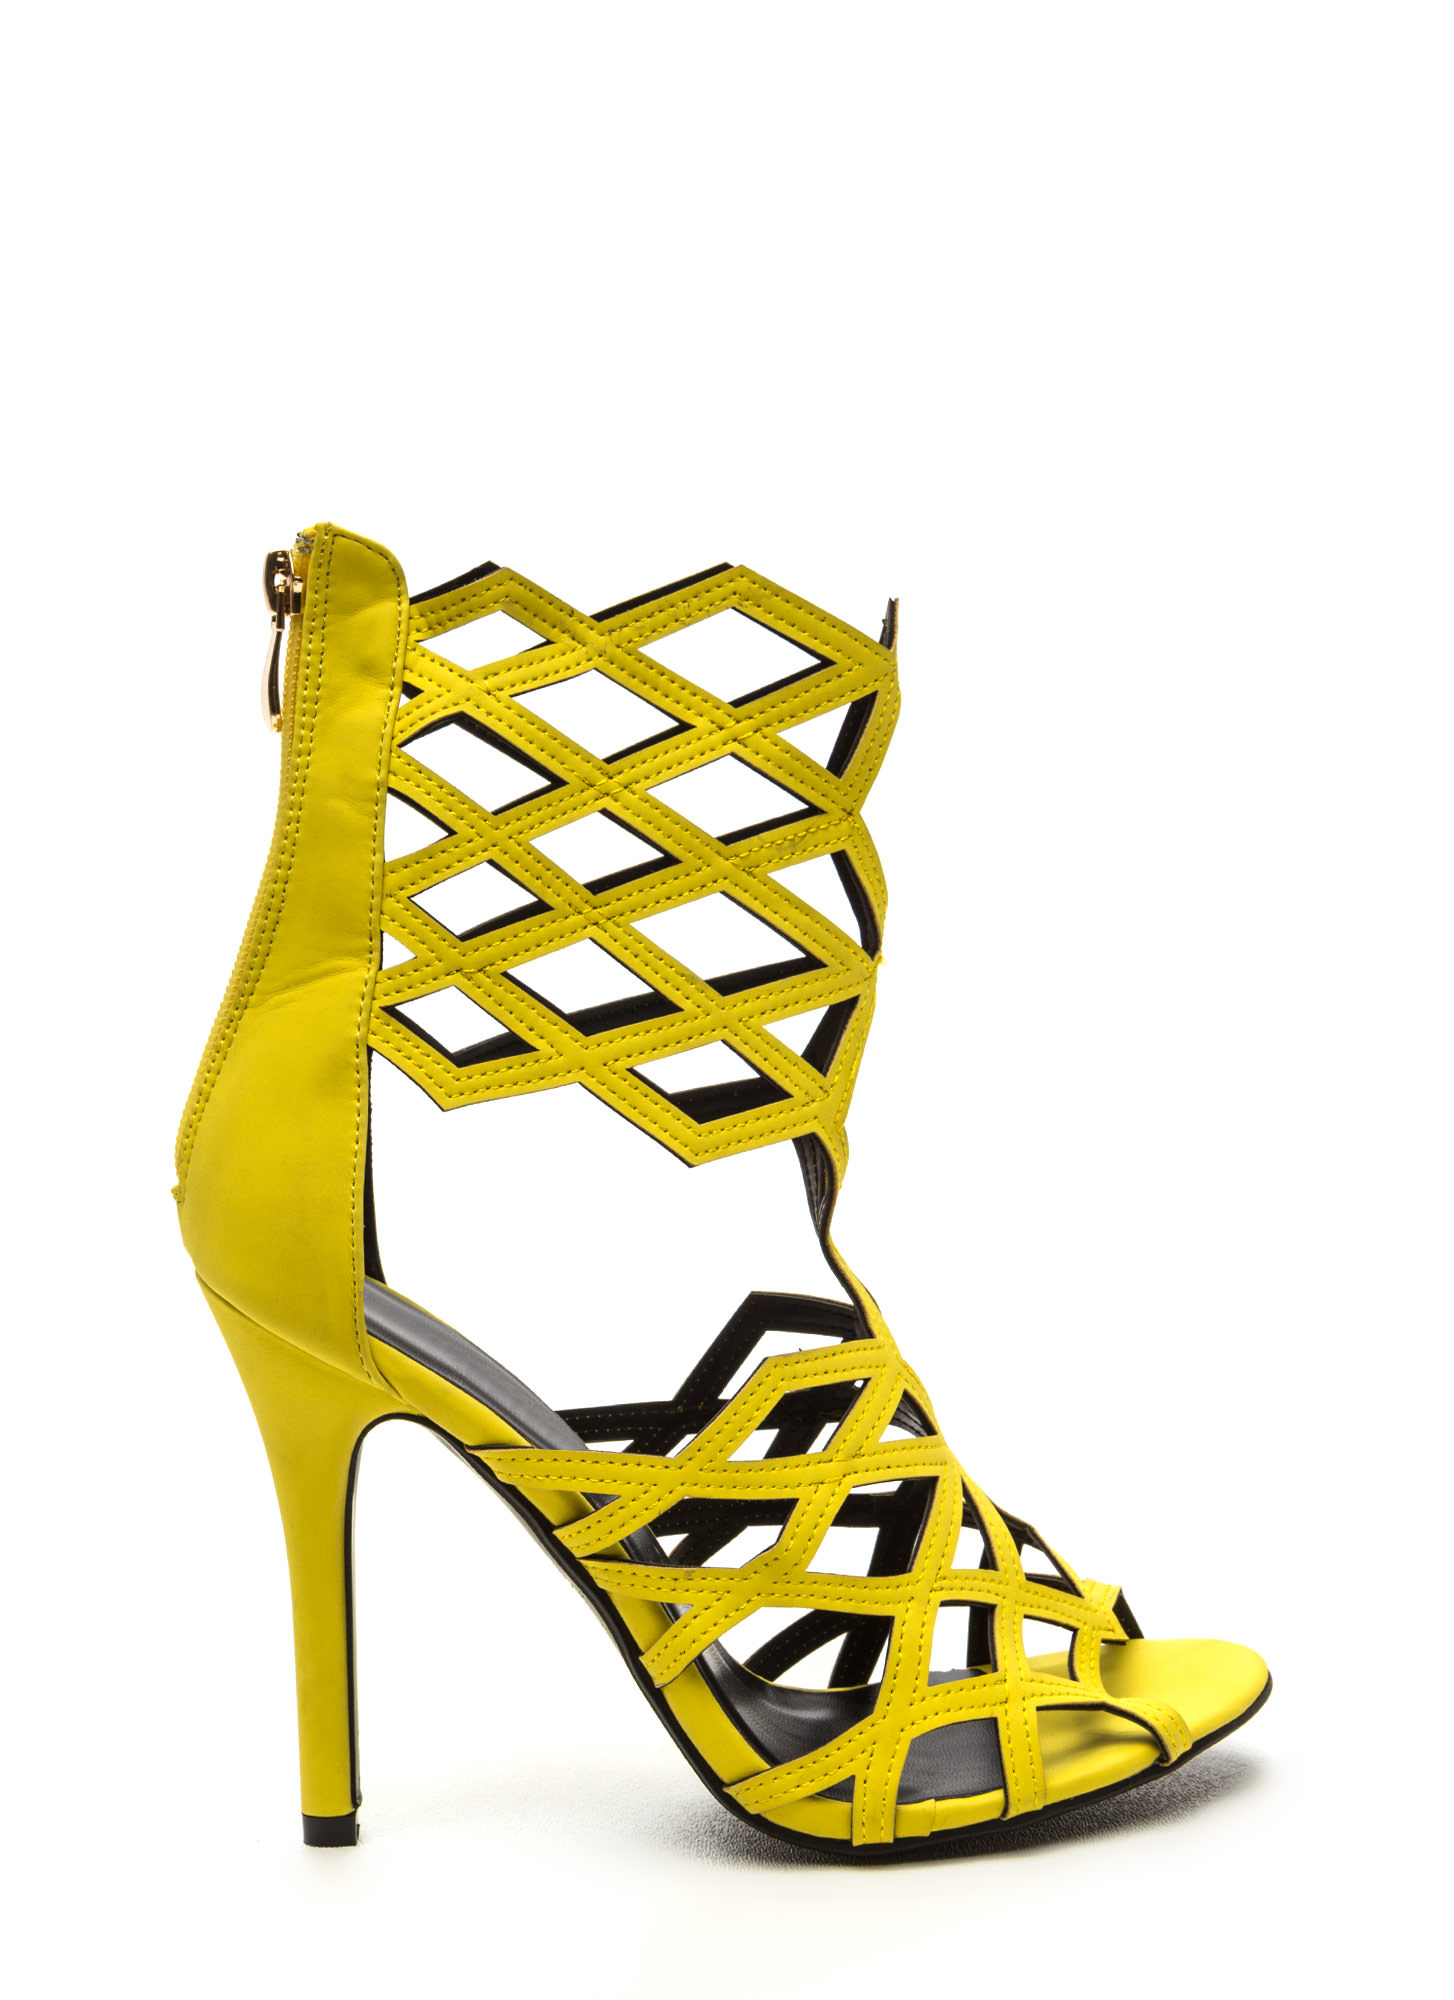 Mustard Yellow Heels - Is Heel